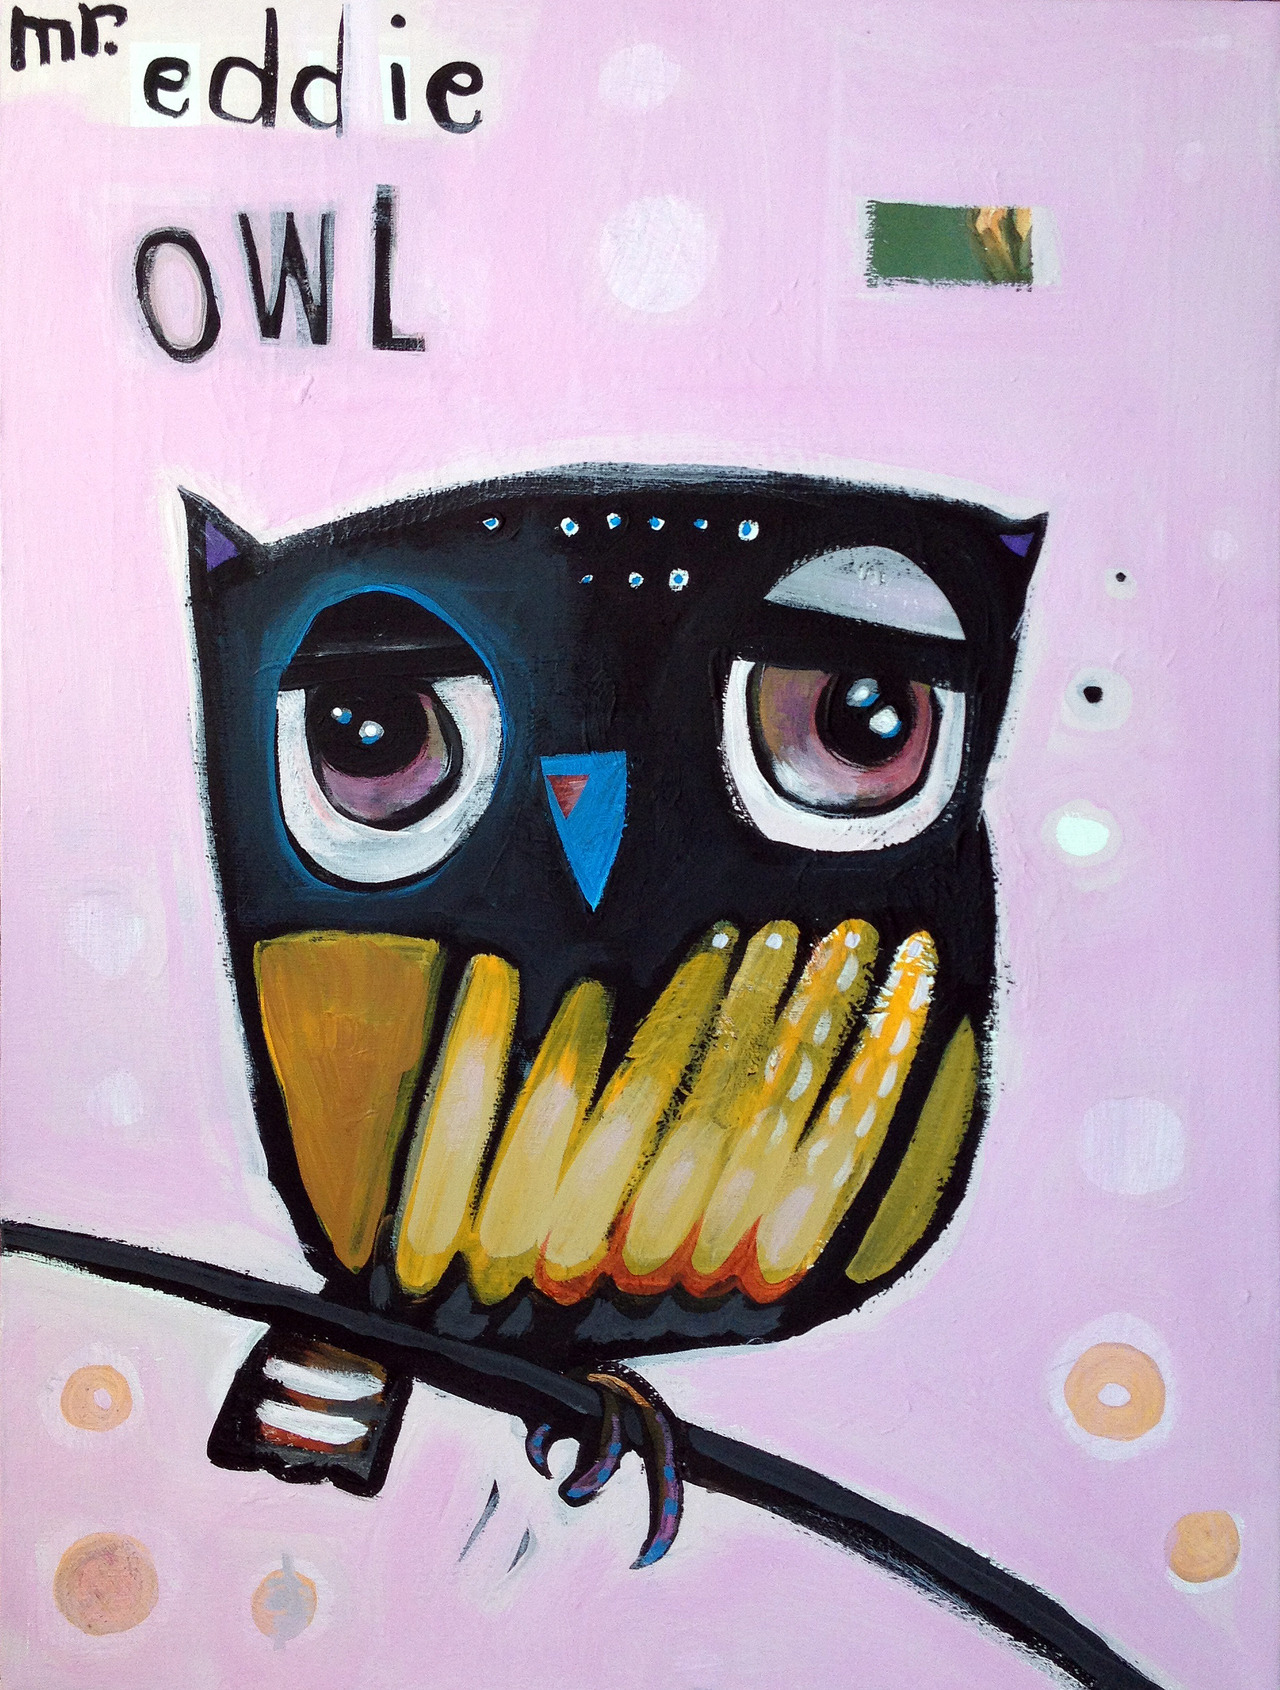 """mr. eddie owl   acrylic on recycled canvas  14x18""""  $15  Currently showing at  The Green Door"""